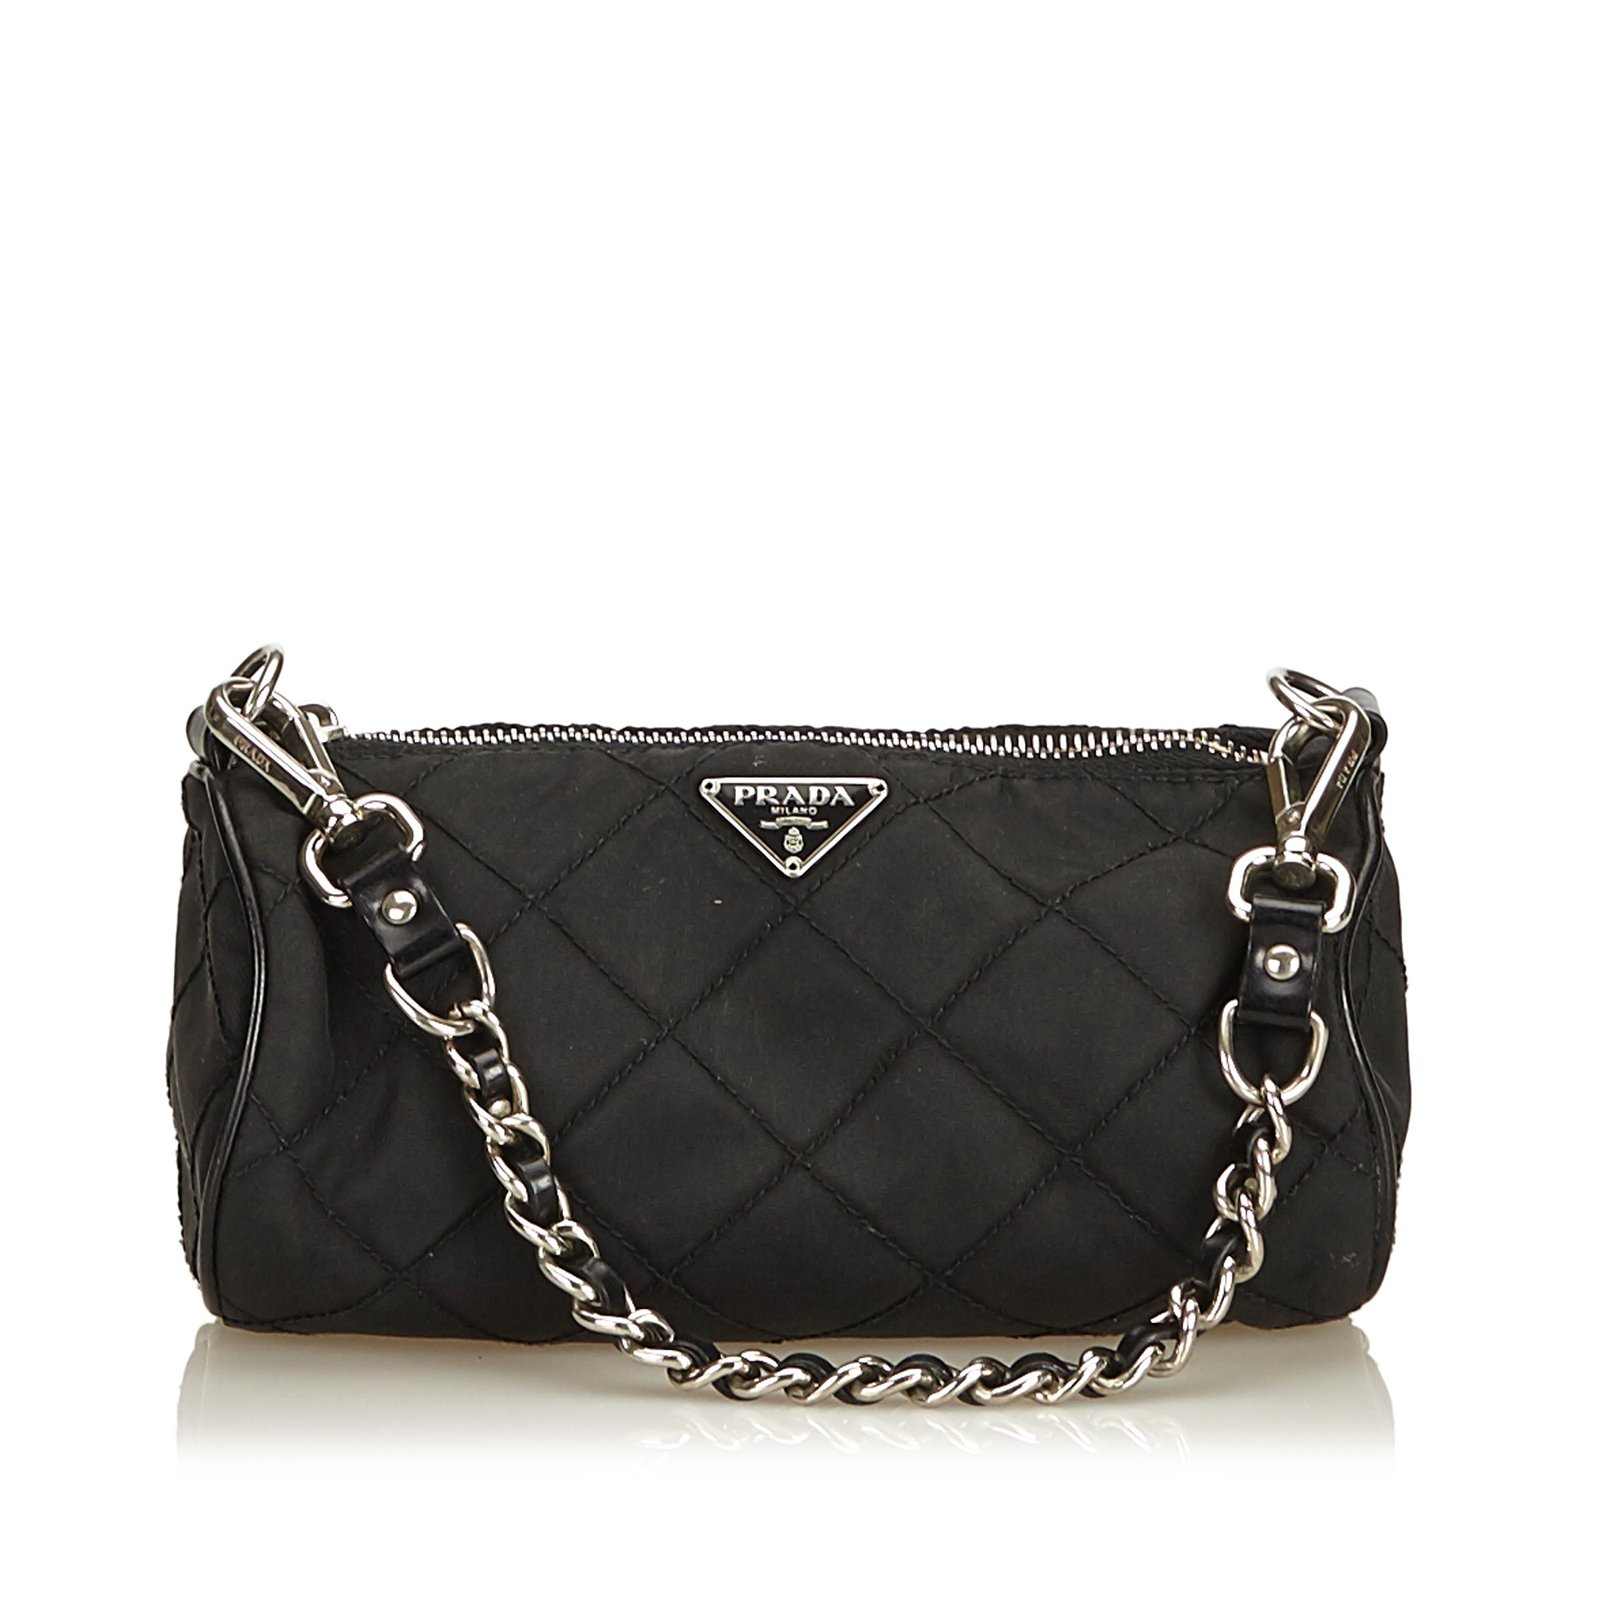 bf6f2d32438e Prada Quilted Nylon Baguette Handbags Leather,Other,Nylon,Cloth Black  ref.98439